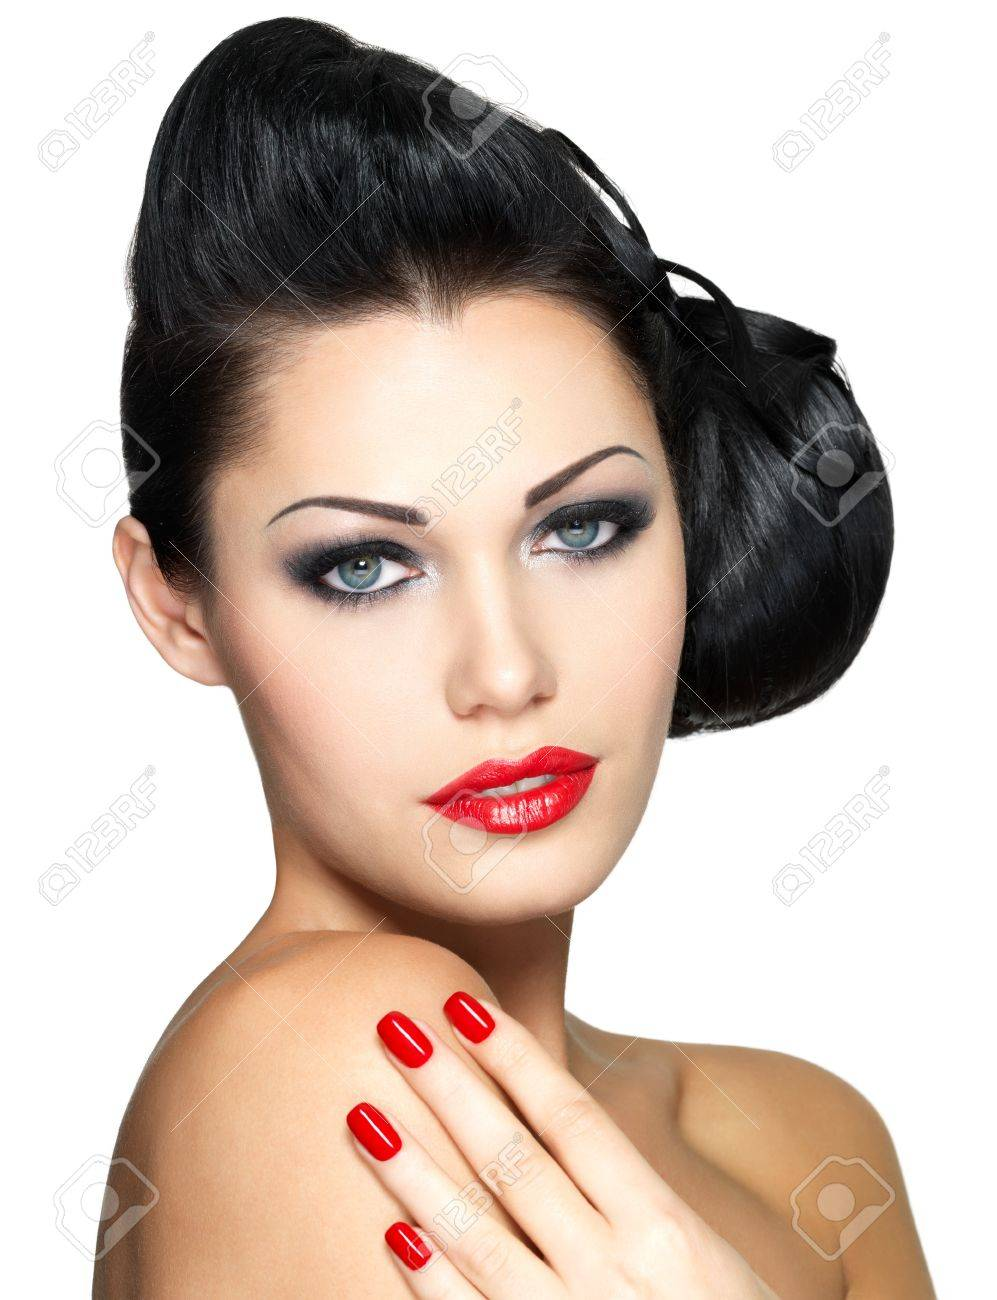 Beautiful young woman with red nails and fashion makeup - isolated on white background Stock Photo - 16642943